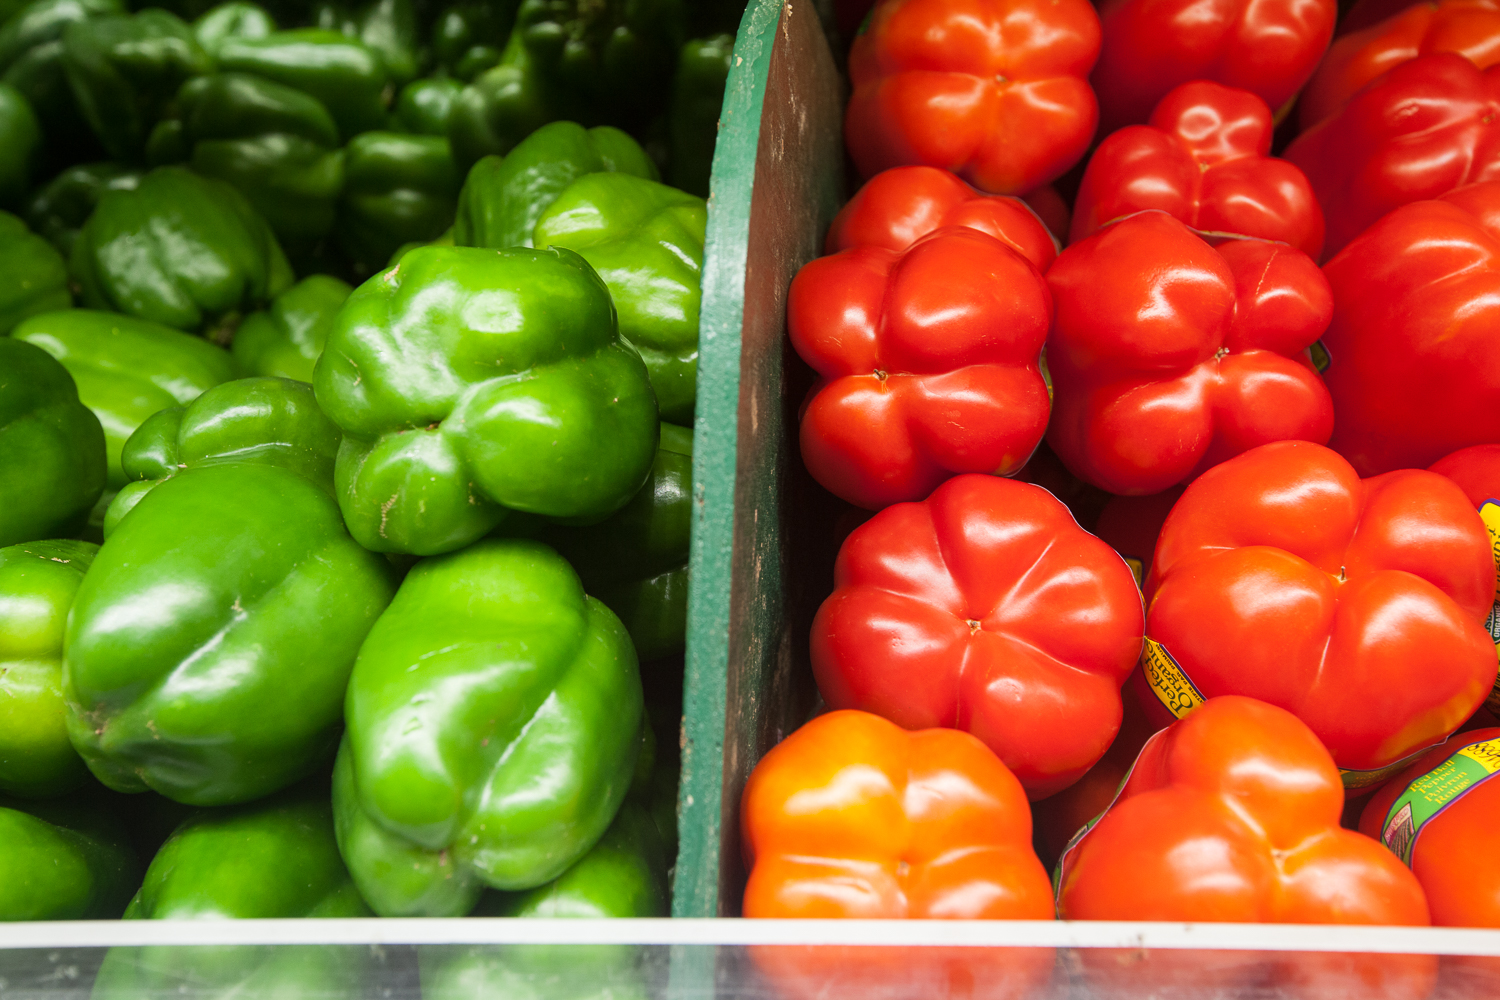 Organic Bell Peppers From Mana Foods Produce Department